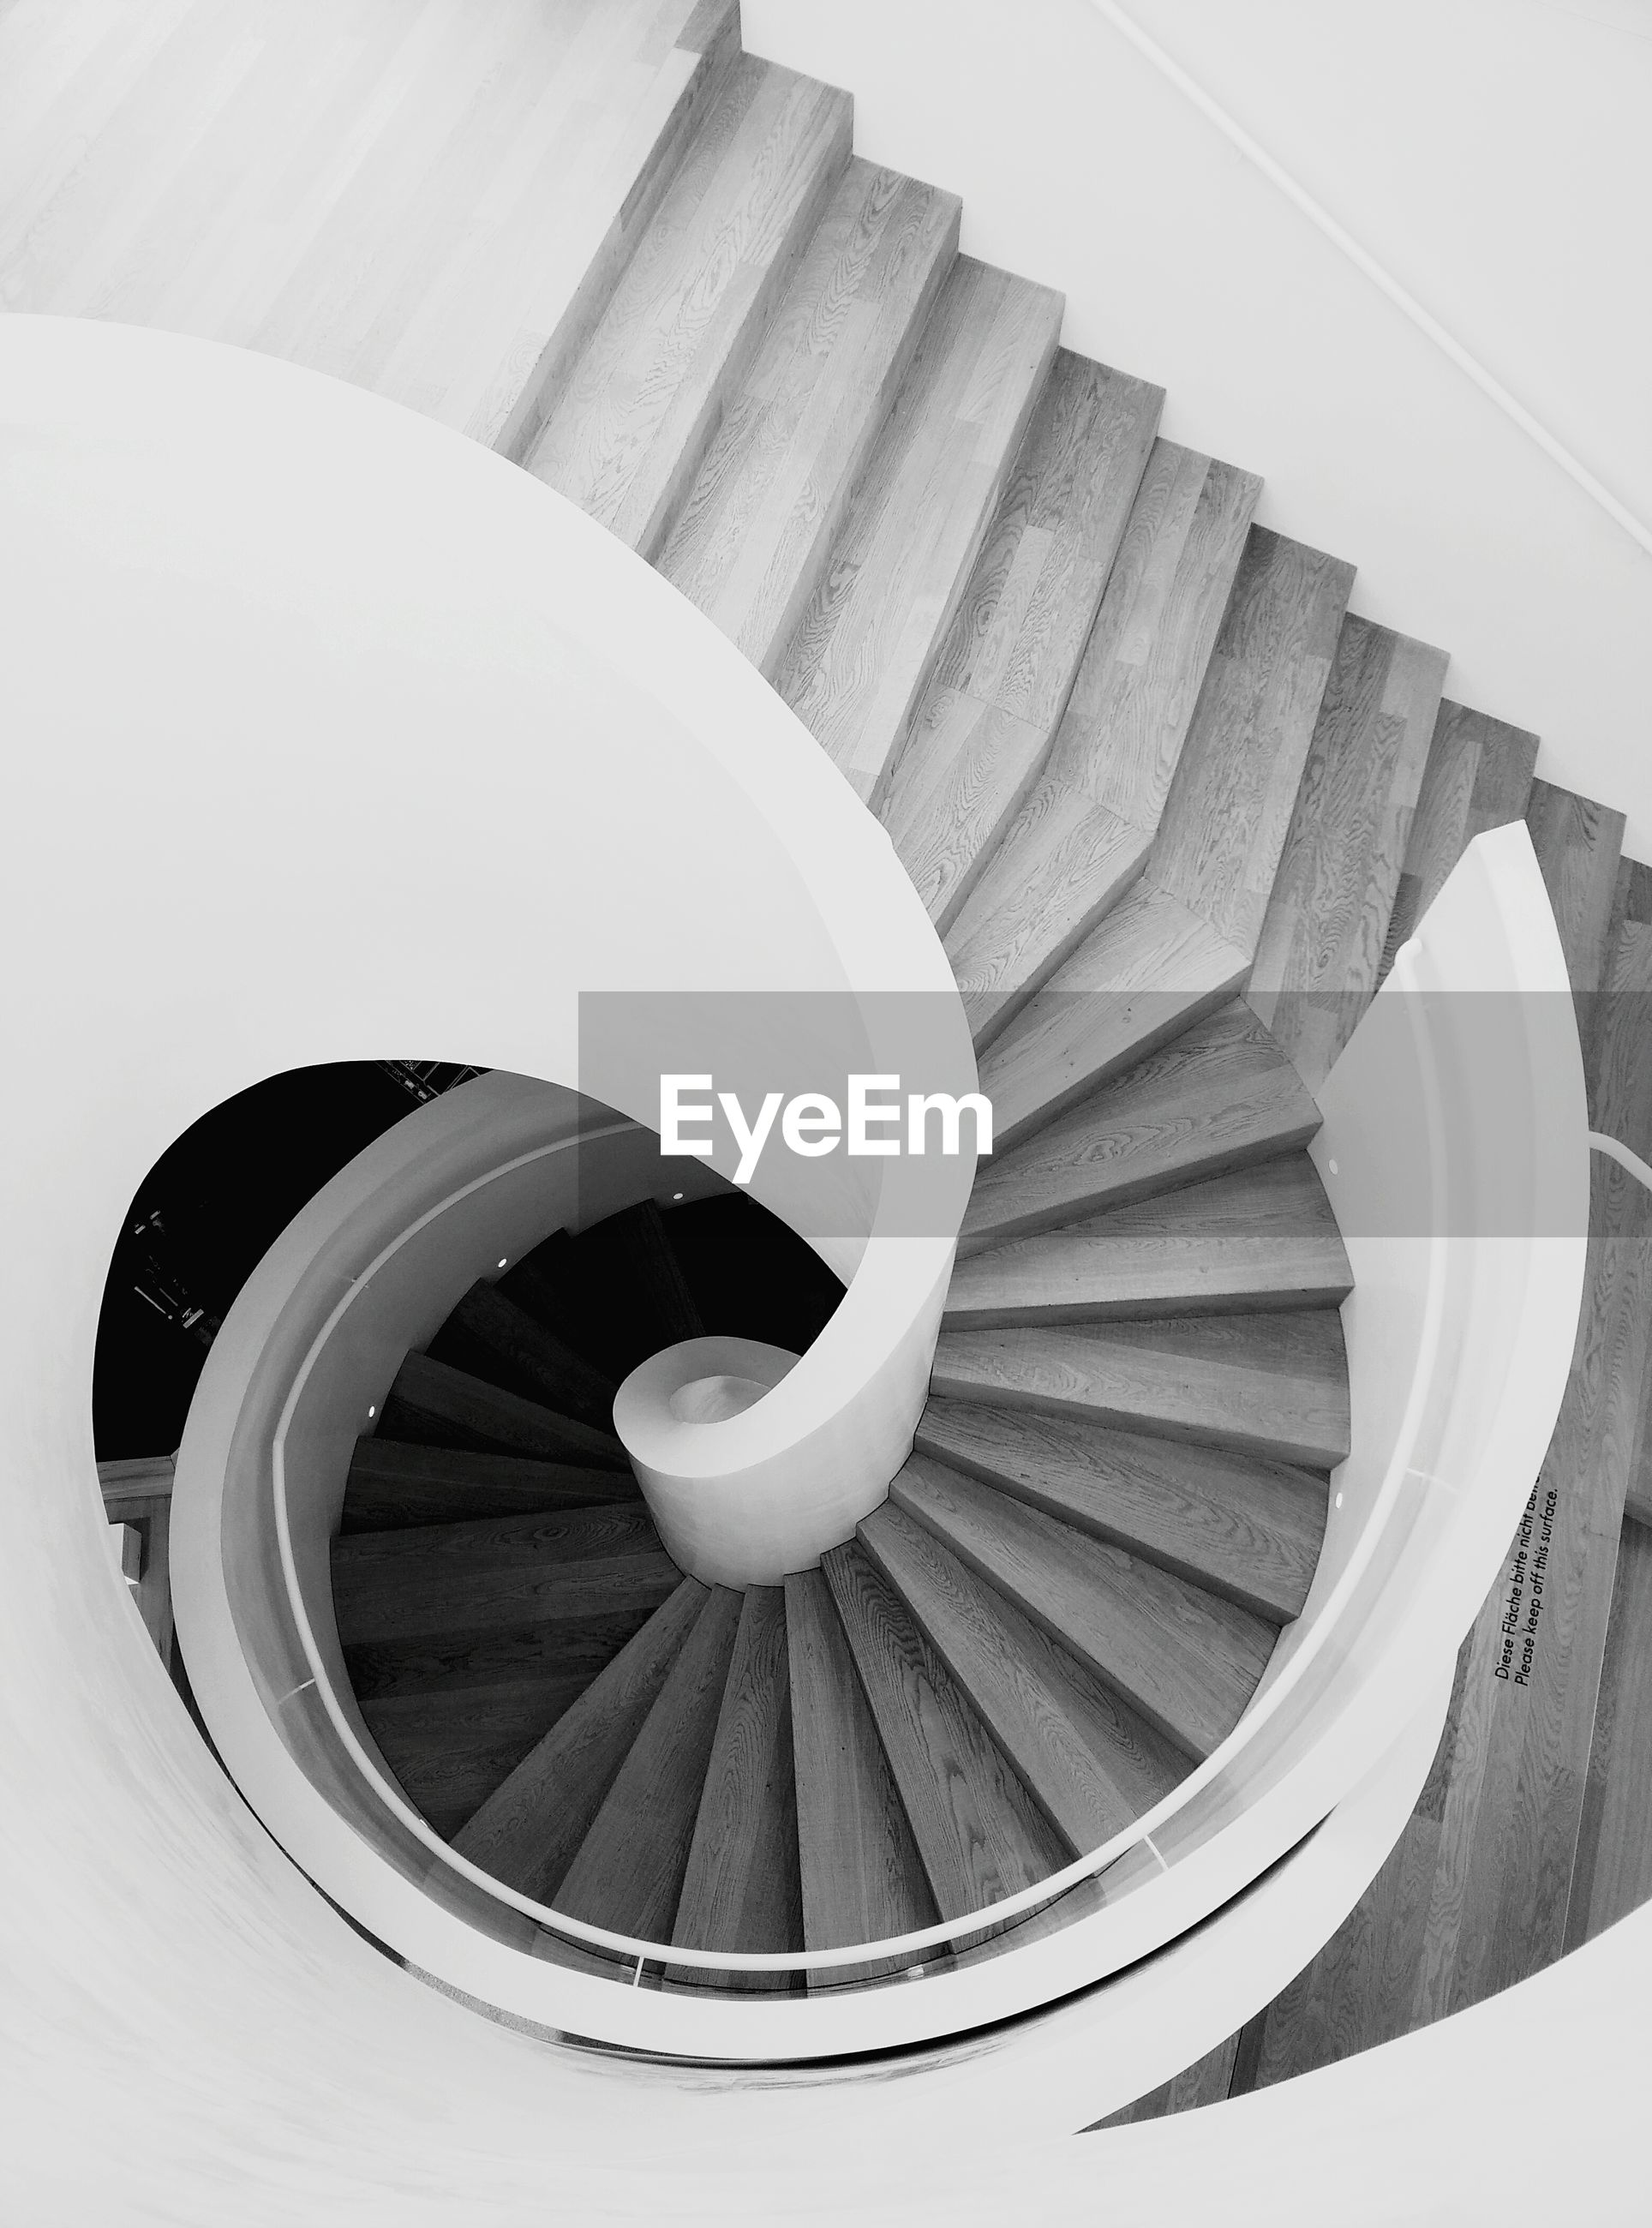 steps and staircases, spiral staircase, staircase, spiral, steps, railing, built structure, circle, architecture, high angle view, indoors, directly above, geometric shape, pattern, white color, building, metal, close-up, shape, stairs